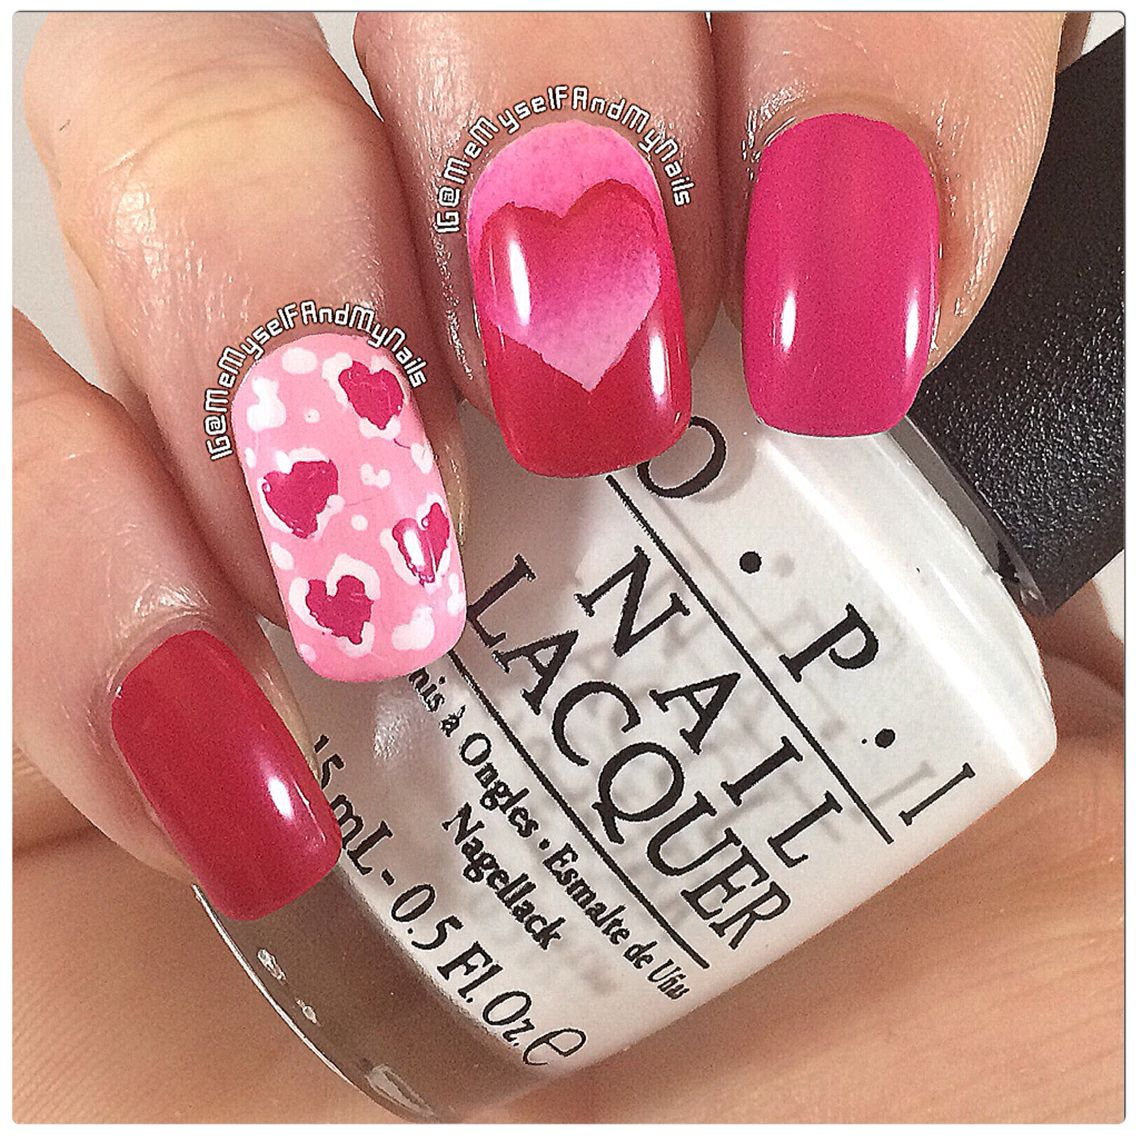 The theme for #veckansopi this week is hearts so I made some valentines day nails! ❤️ Reverse gradient heart with some heart leopard prints! ✌️ #OPI 'Fashion A Bow', 'Pink Flamenco', 'Alpine Snow' and my home made 'Suzi Shops & Island Hops' #polish #nailpolish #laquer #naildesign #weheartit #love #pretty #cute #style #fashion #pinknails #easynails #diynails #heart #leopardnails #gradientnails #valentinesdaynails